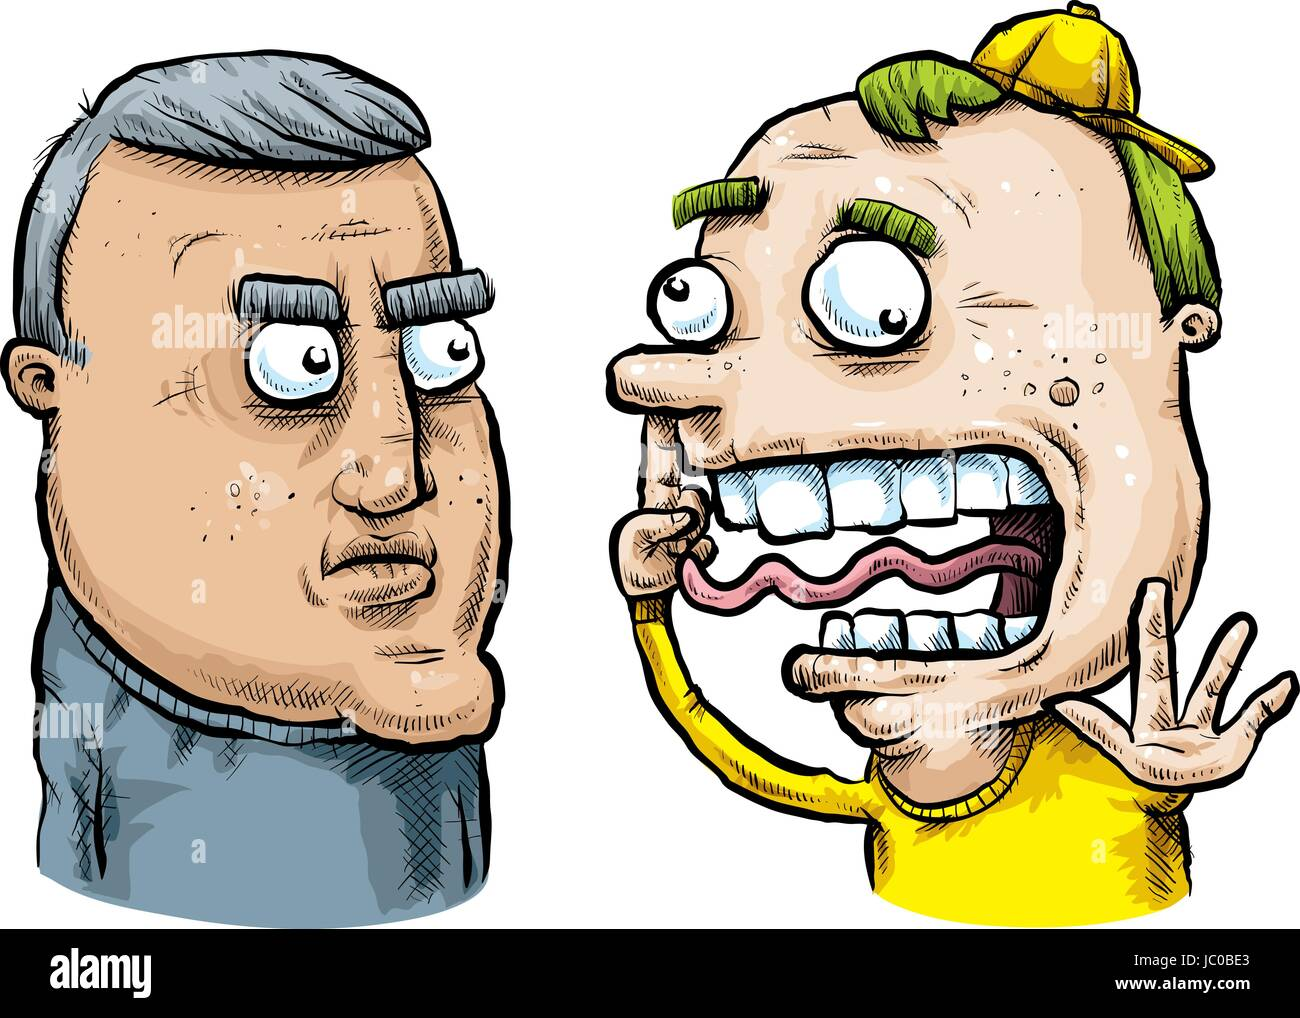 A serious, middle aged cartoon man does not understand the goofy, younger man. - Stock Vector